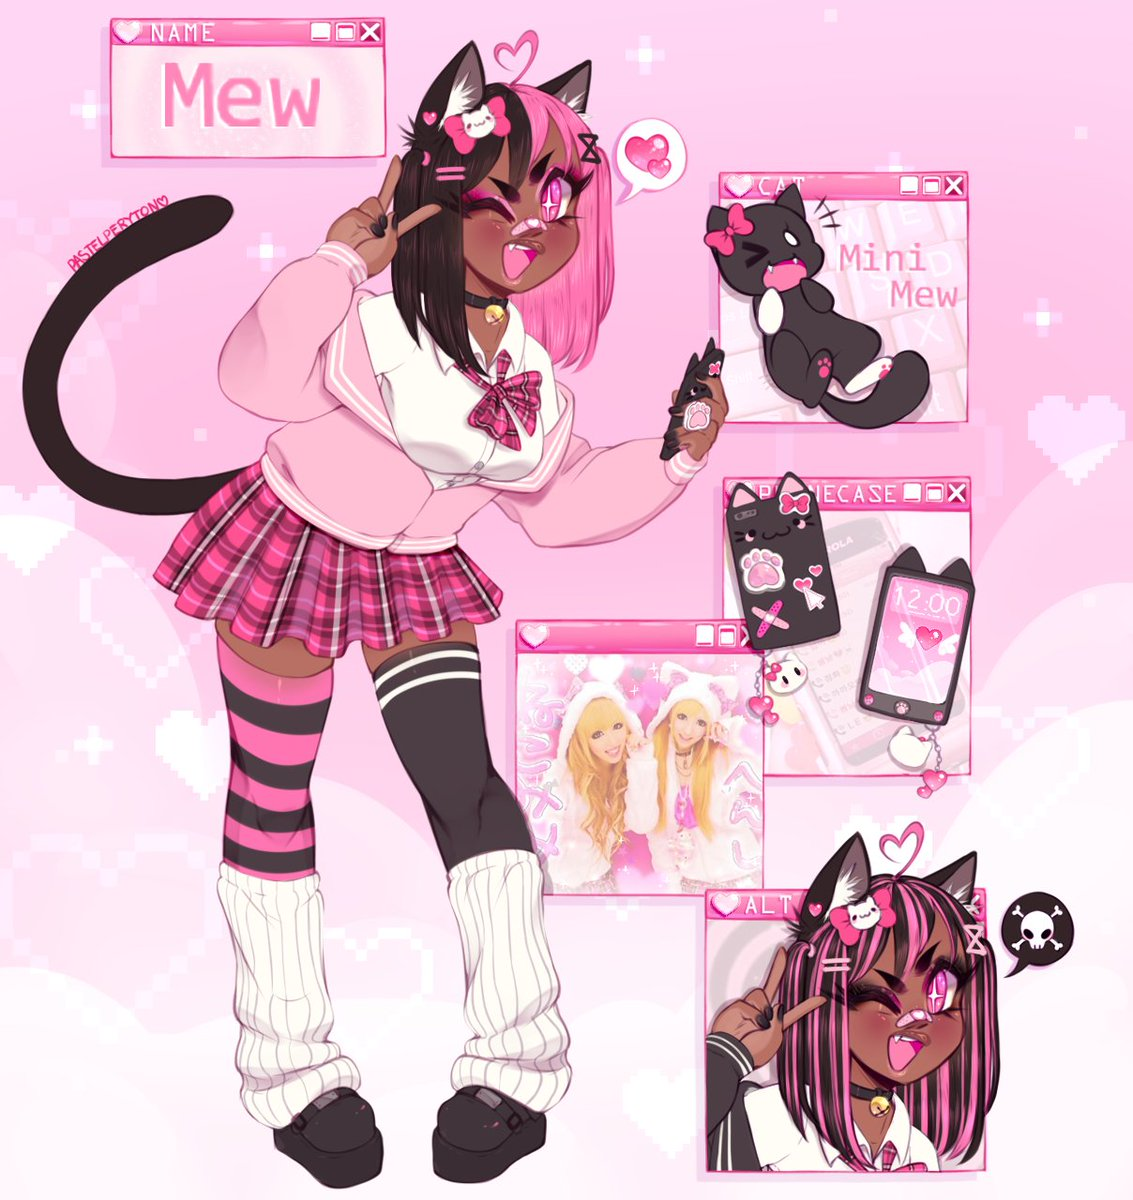 RT @pastelperyton: made a better ref sheet for my kitty Mew !! 💗✨ + closeups on her face + alt colors https://t.co/0C1QToH4L8